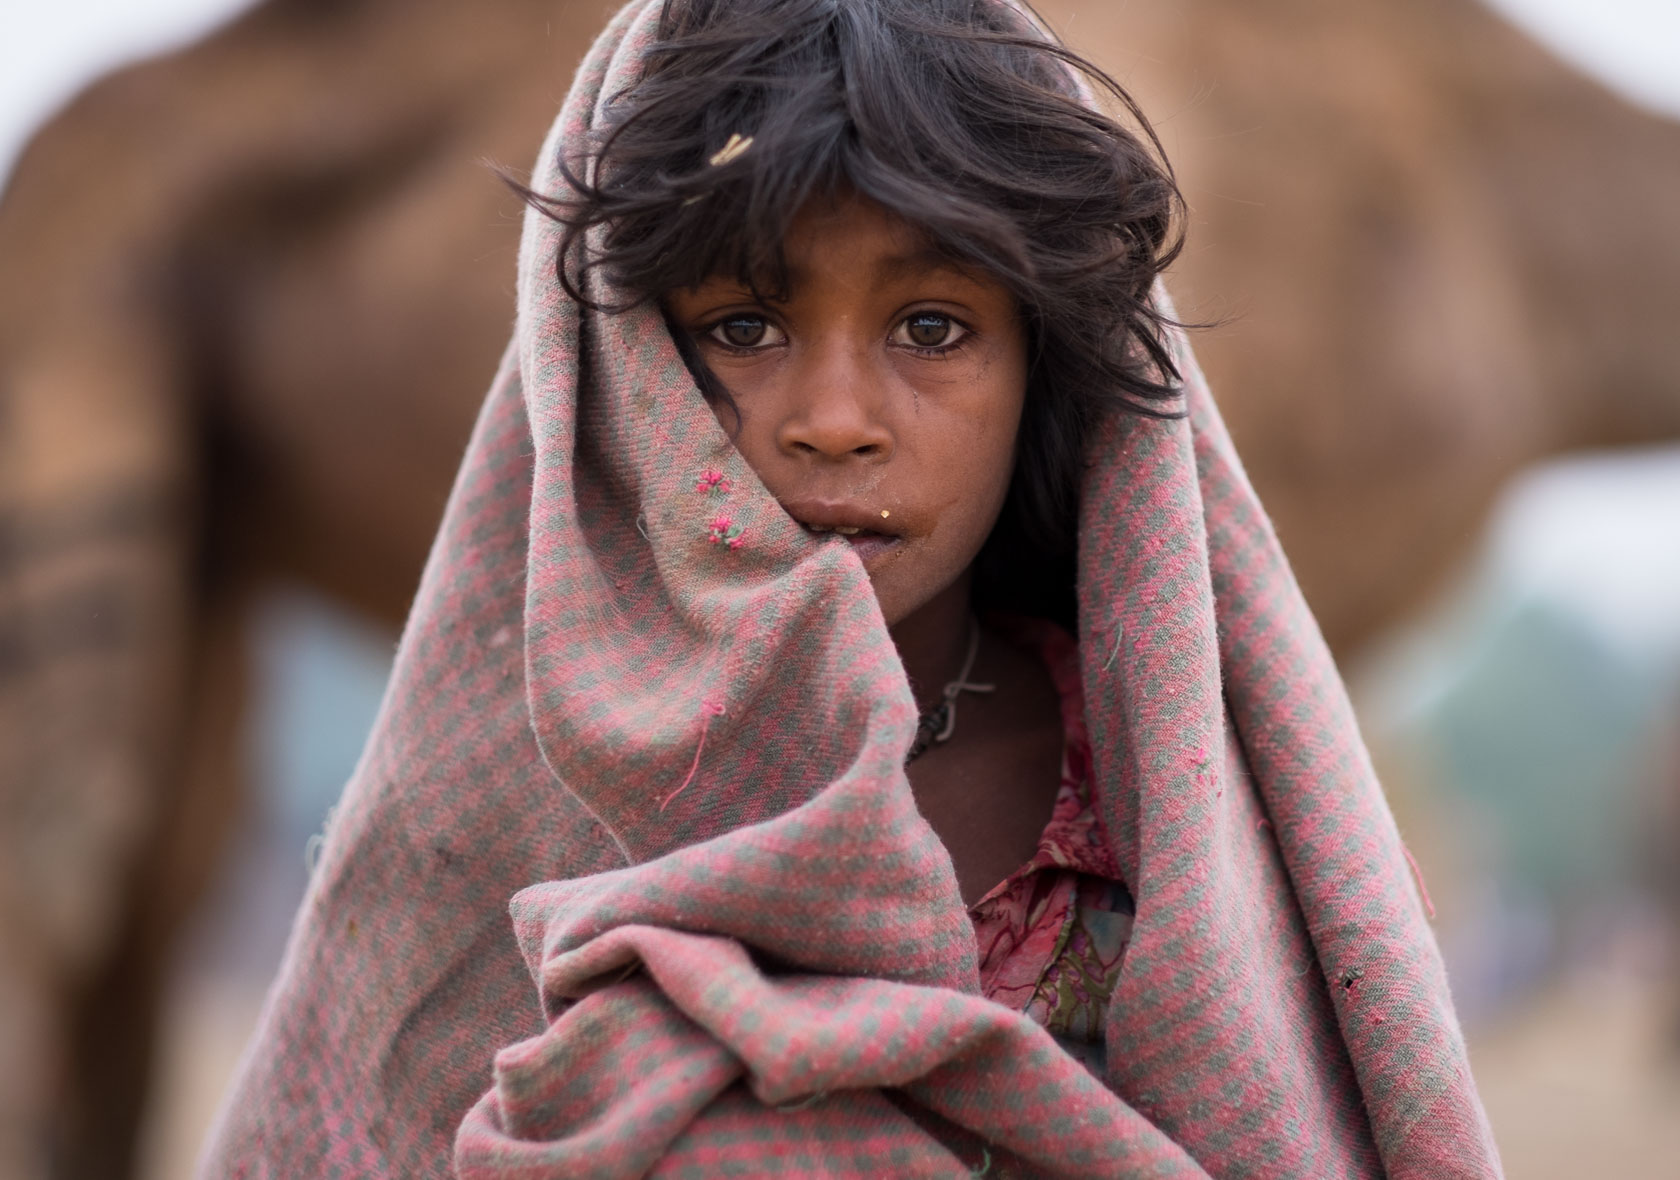 Gypsy Child, Pushkar, India